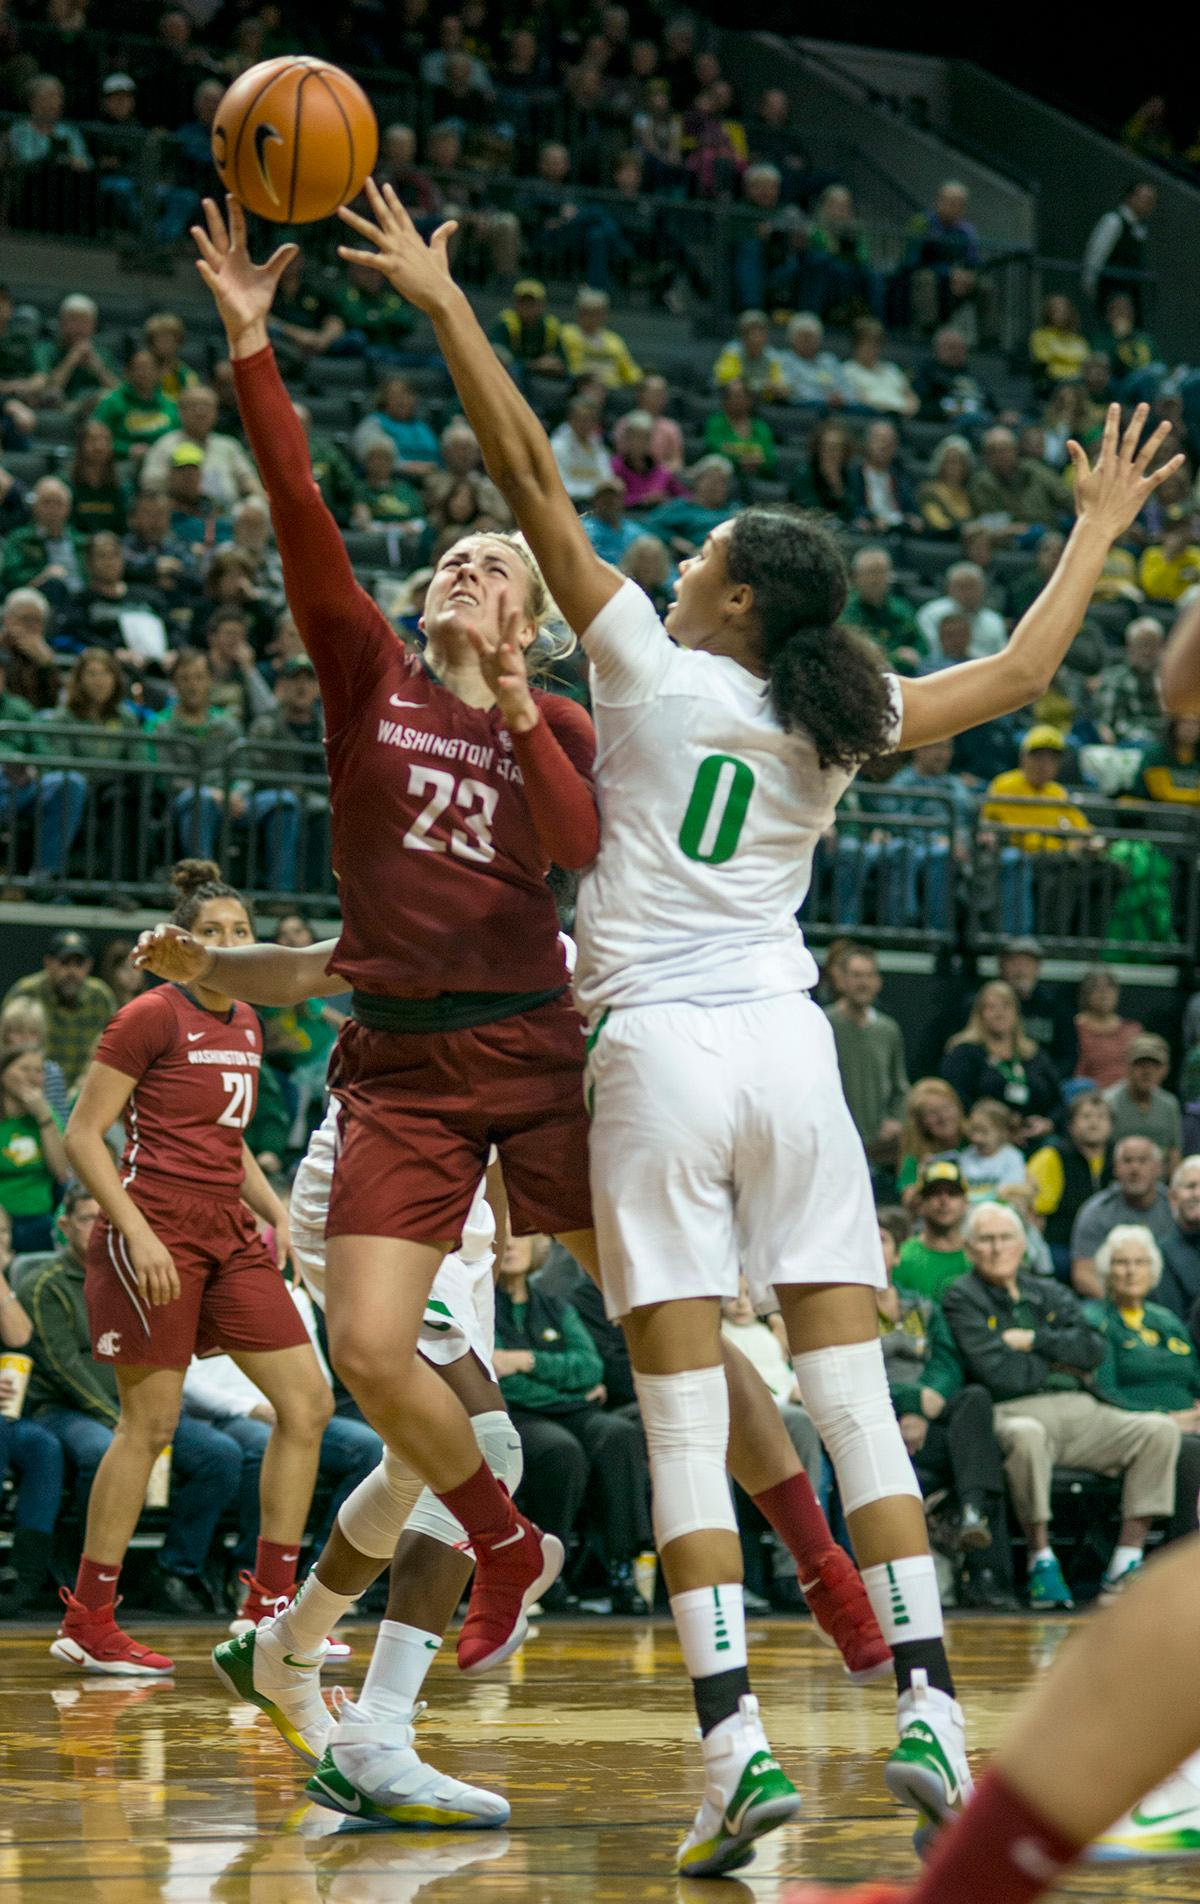 Oregon Ducks Satou Sabally (#0) and Washington State University Cougars Alexys Swedlund (#23) fight for control of a rebound. In their first conference basketball game of the season, the Oregon Women Ducks defeated the Washington State Cougars 89-56 in Matt Knight Arena Saturday afternoon. Oregon's Ruthy Hebard ran up 25 points with 10 rebounds. Sabrina Ionescu shot 25 points with five three-pointers and three rebounds. Lexi Bando added 18 points, with four three-pointers and pulled down three rebounds. Satou Sabally ended the game with 14 points with one three-pointer and two rebounds. The Ducks are now 12-2 overall with 1-0 in conference and the Cougars stand at 7-6 overall and 0-1 in conference play. The Oregon Women Ducks next play the University of Washington Huskies at 1:00 pm on Sunday. Photo by Rhianna Gelhart, Oregon News Lab